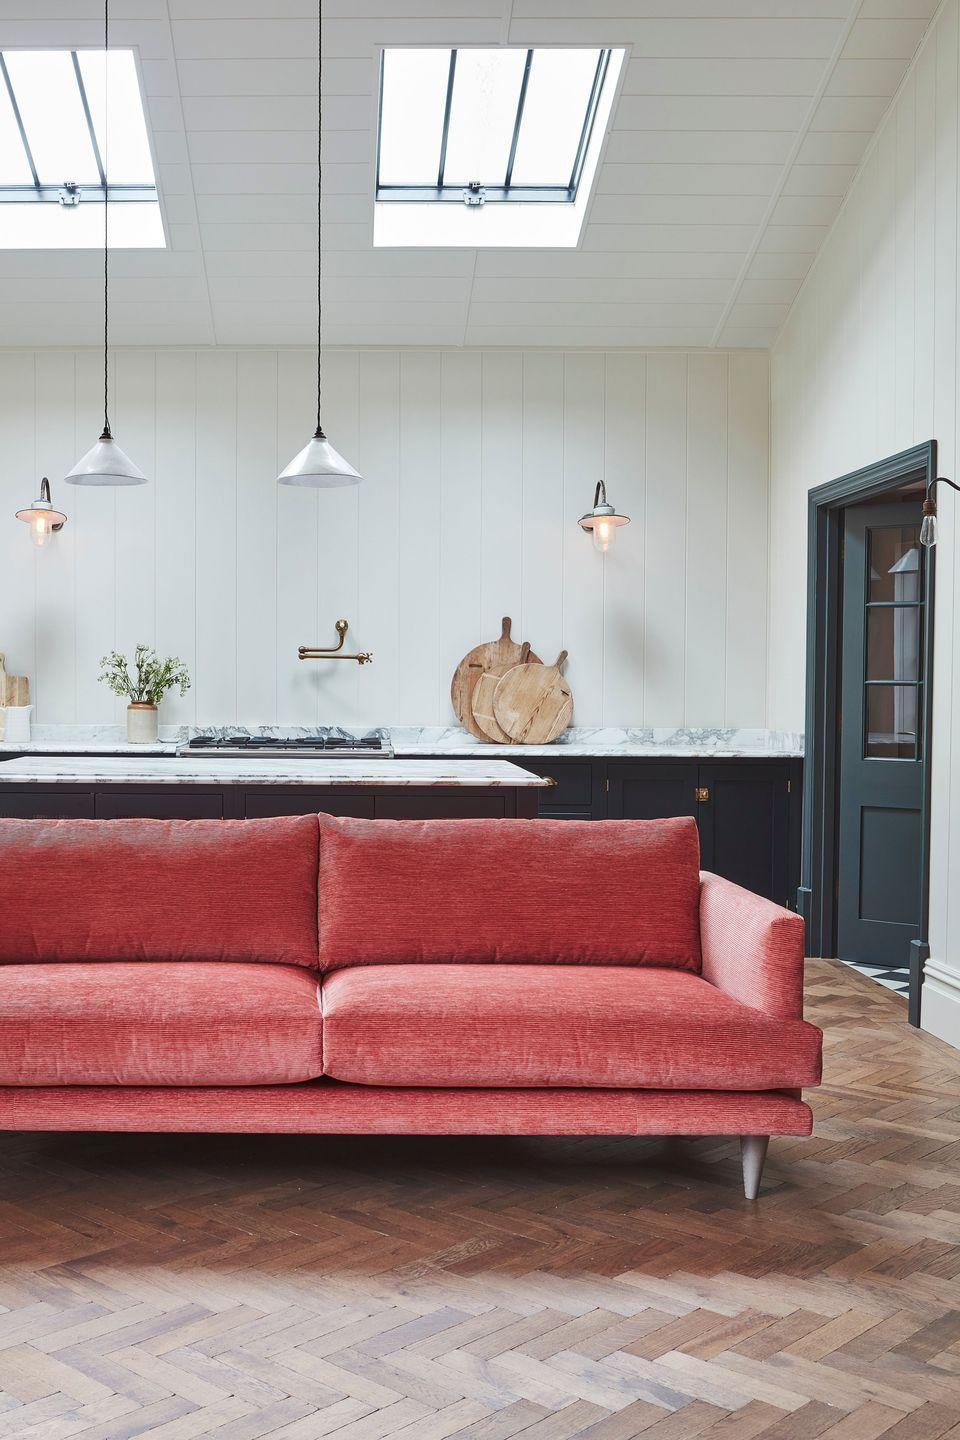 """<p>Red sofas can uplift moodier colour palettes used throughout a room, such as dark walls or deep mahogany floors. A sophisticated upholstery, such as a plush velvet or two-toned wool, offsets any risk of your reds appearing too bright or garish. </p><p>Pictured: <a href=""""https://go.redirectingat.com?id=127X1599956&url=https%3A%2F%2Fwww.darlingsofchelsea.co.uk%2Fmiddleton-range&sref=https%3A%2F%2Fwww.housebeautiful.com%2Fuk%2Fdecorate%2Fliving-room%2Fg37418005%2Fmost-popular-sofa-colours%2F"""" rel=""""nofollow noopener"""" target=""""_blank"""" data-ylk=""""slk:Middleton Sofa at Darlings of Chelsea"""" class=""""link rapid-noclick-resp"""">Middleton Sofa at Darlings of Chelsea</a></p>"""